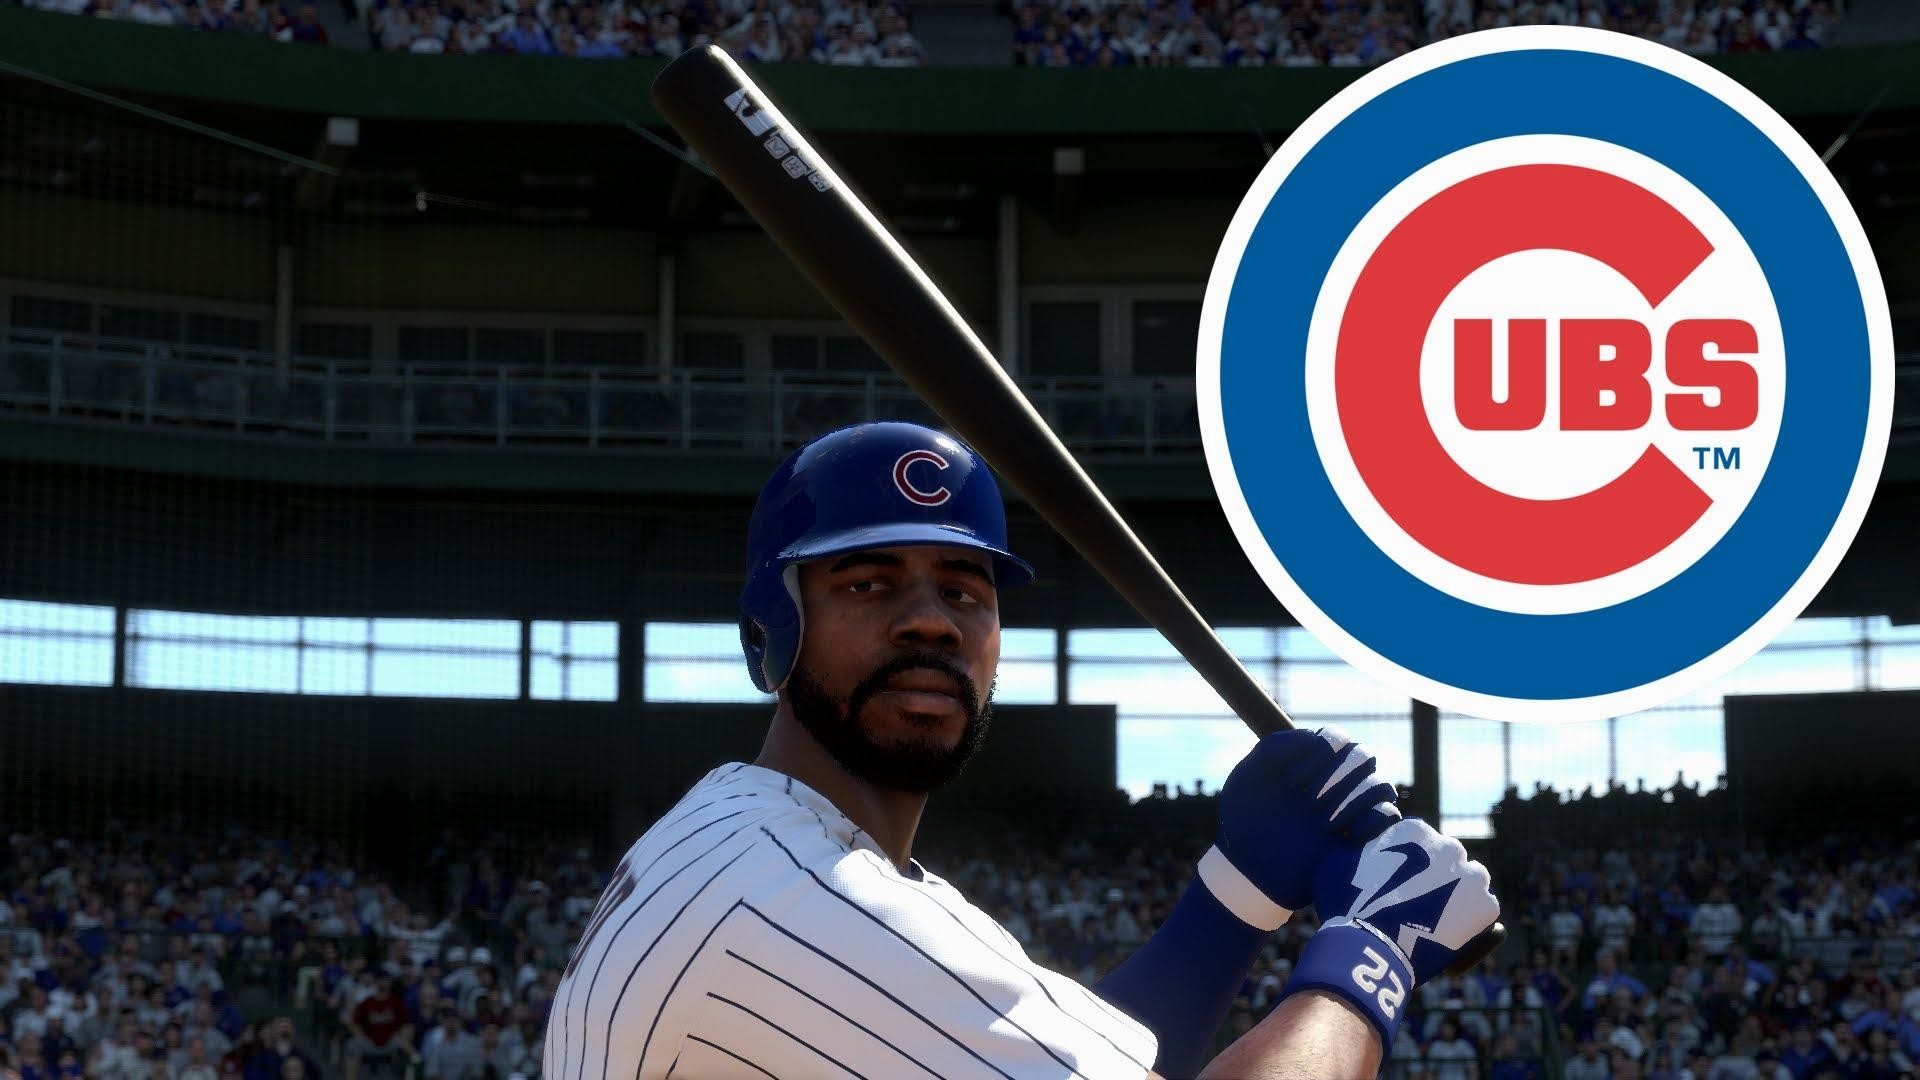 1920x1080 wallpaper.wiki-Wallpapers-HD-Chicago-Cubs-Backgrounds-PIC-